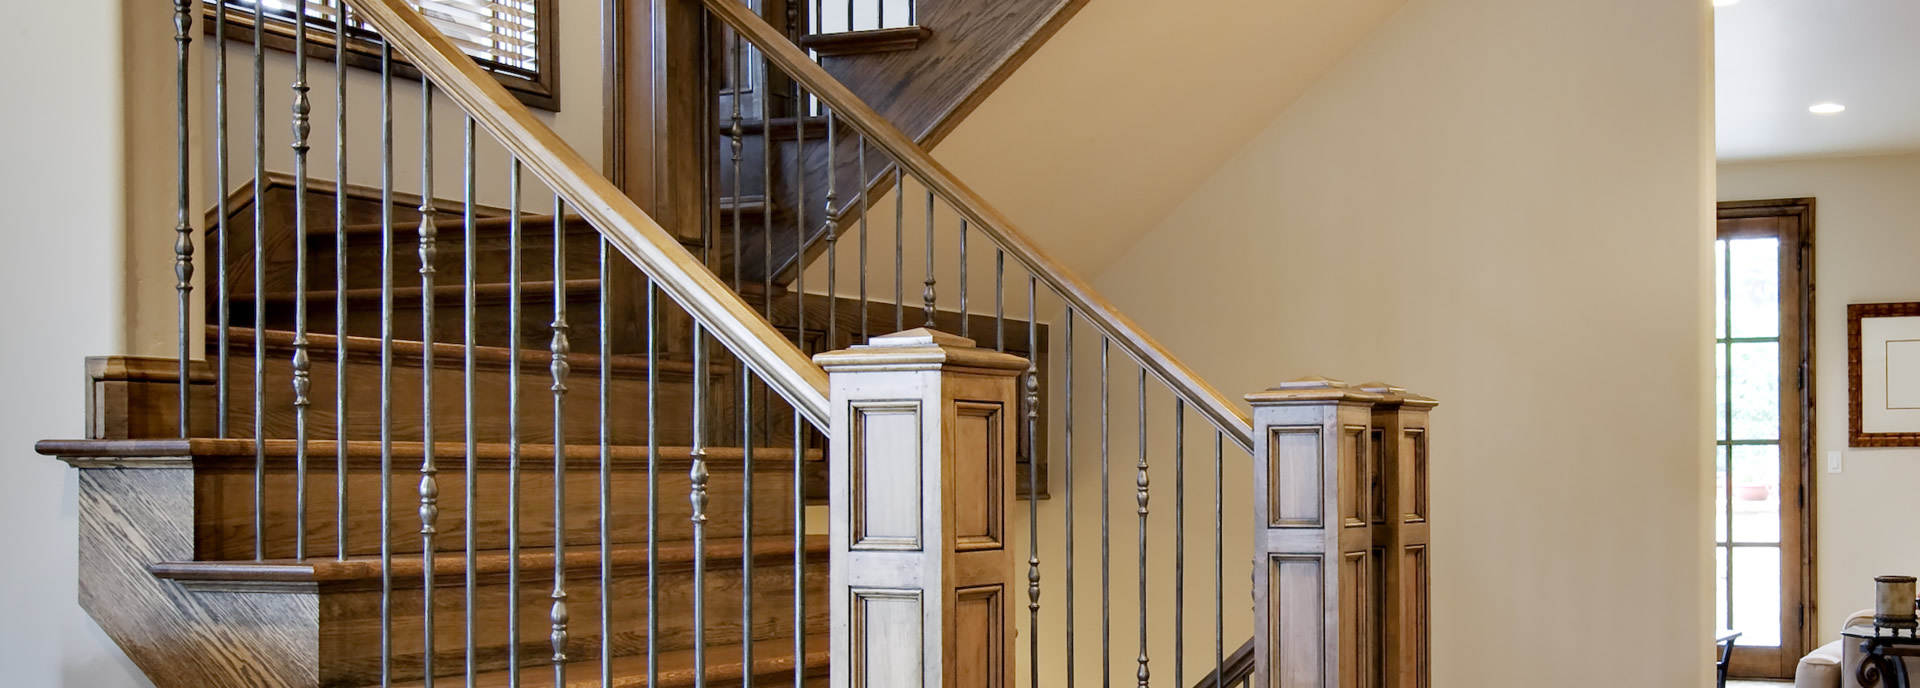 Southern Charm: Elegant Curved Staircases at Universities Across the Nation Alpharetta, GA